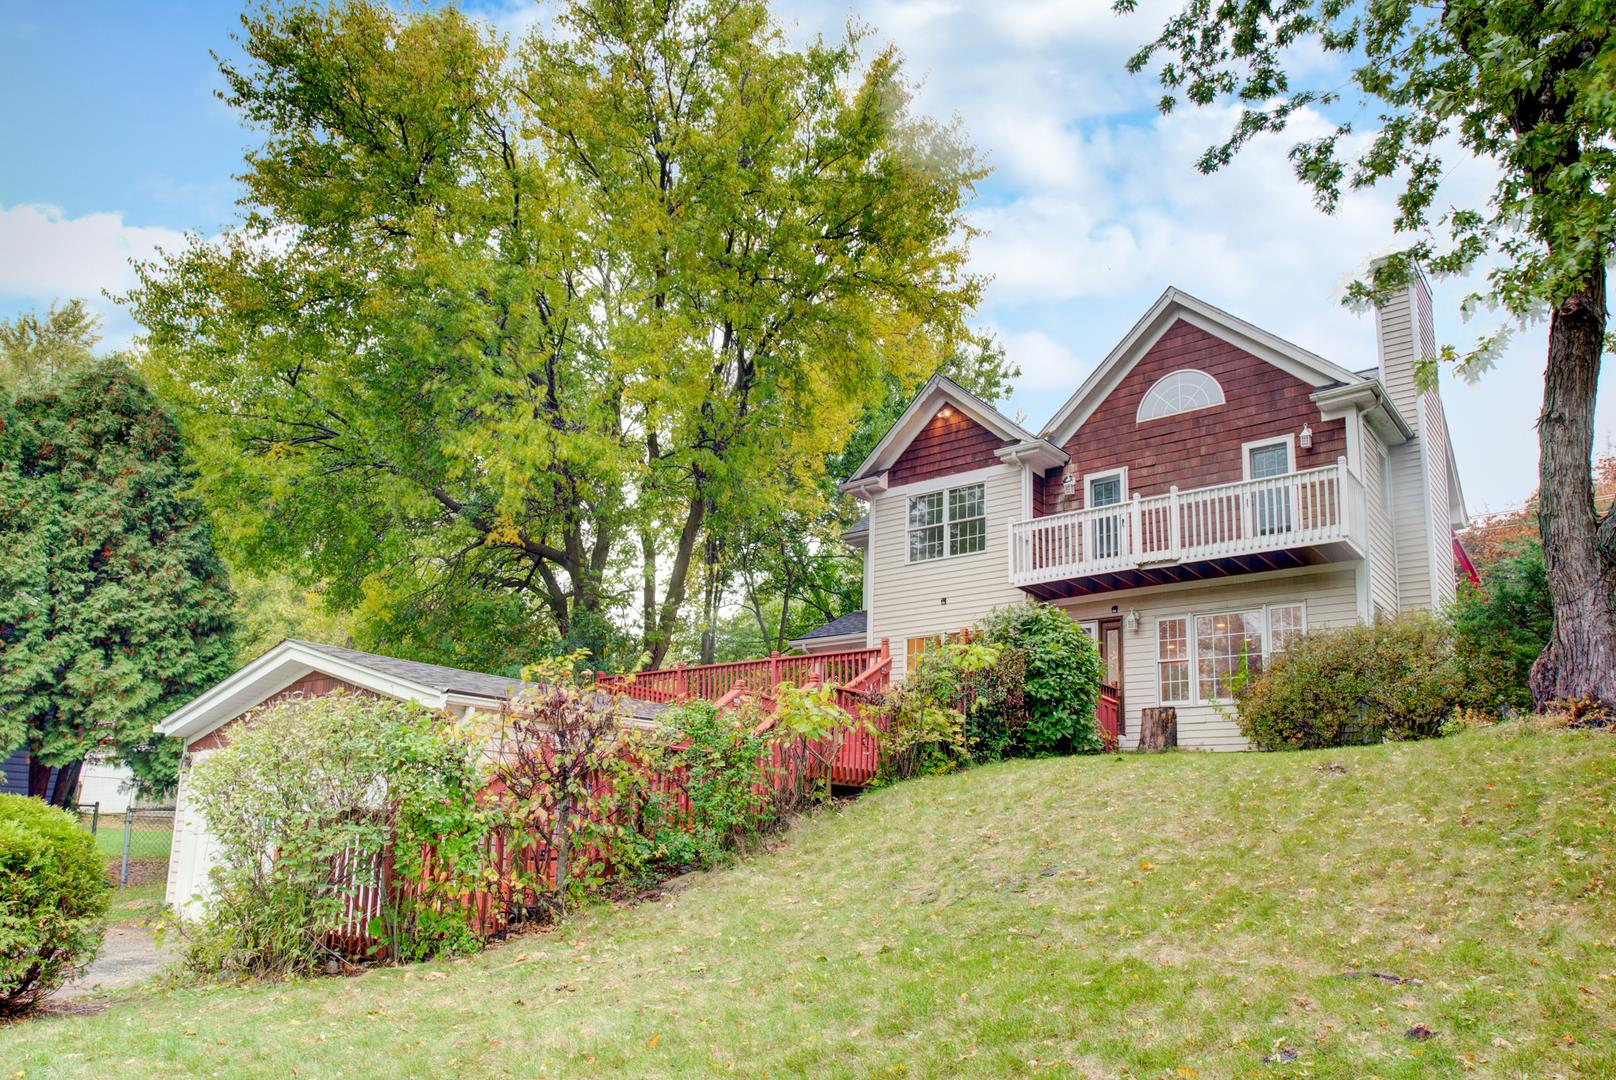 1001 Burr Street, Lake in the Hills, IL 60156 - #: 10907071